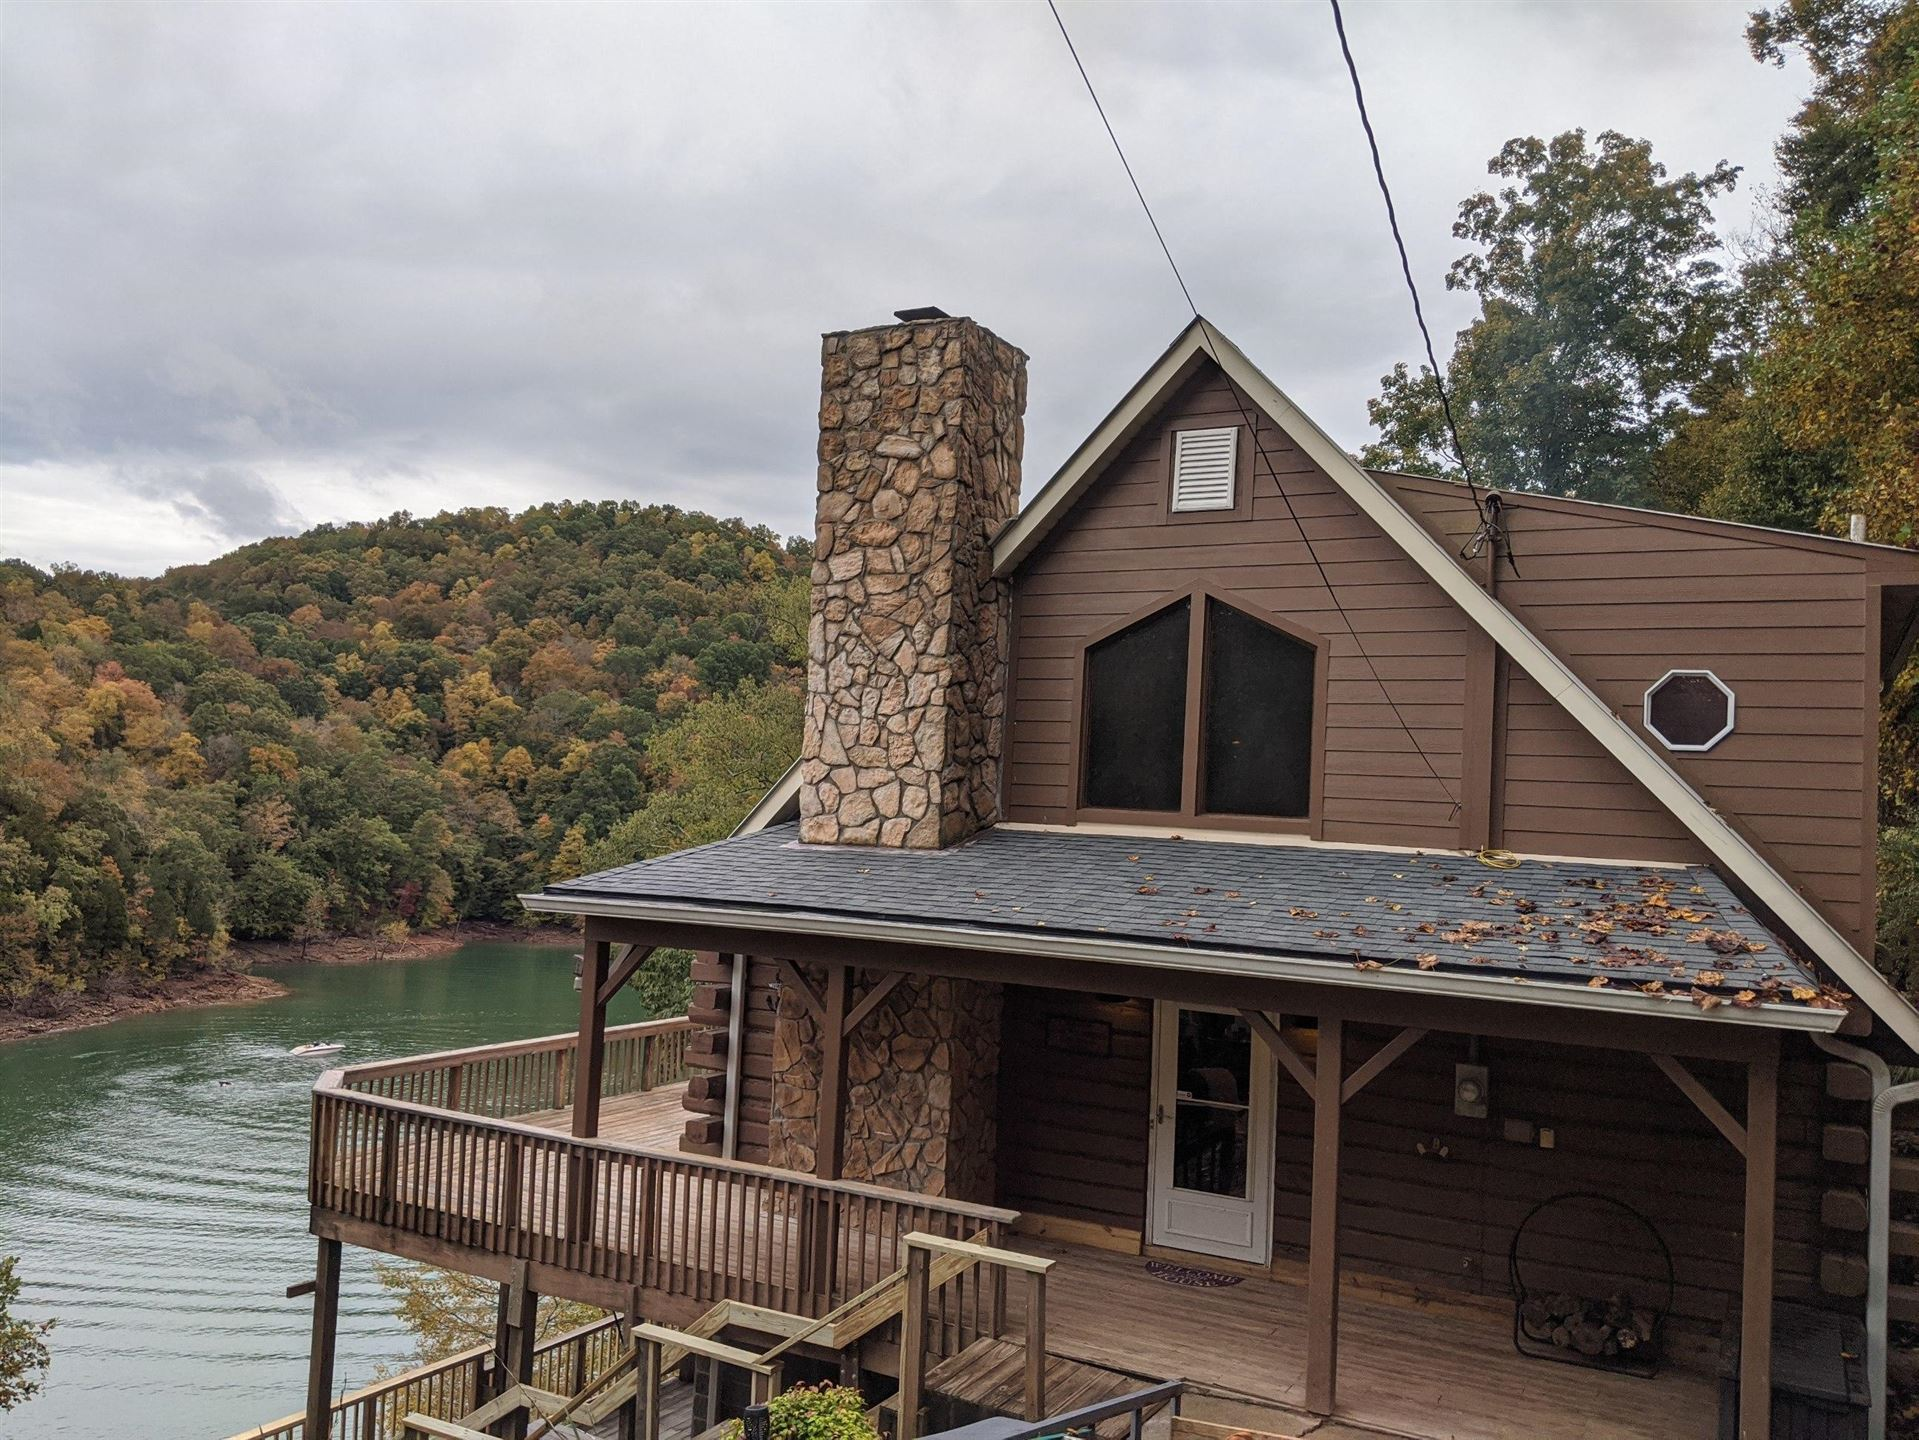 Photo for 130 Megan Lane, LaFollette, TN 37766 (MLS # 1132530)